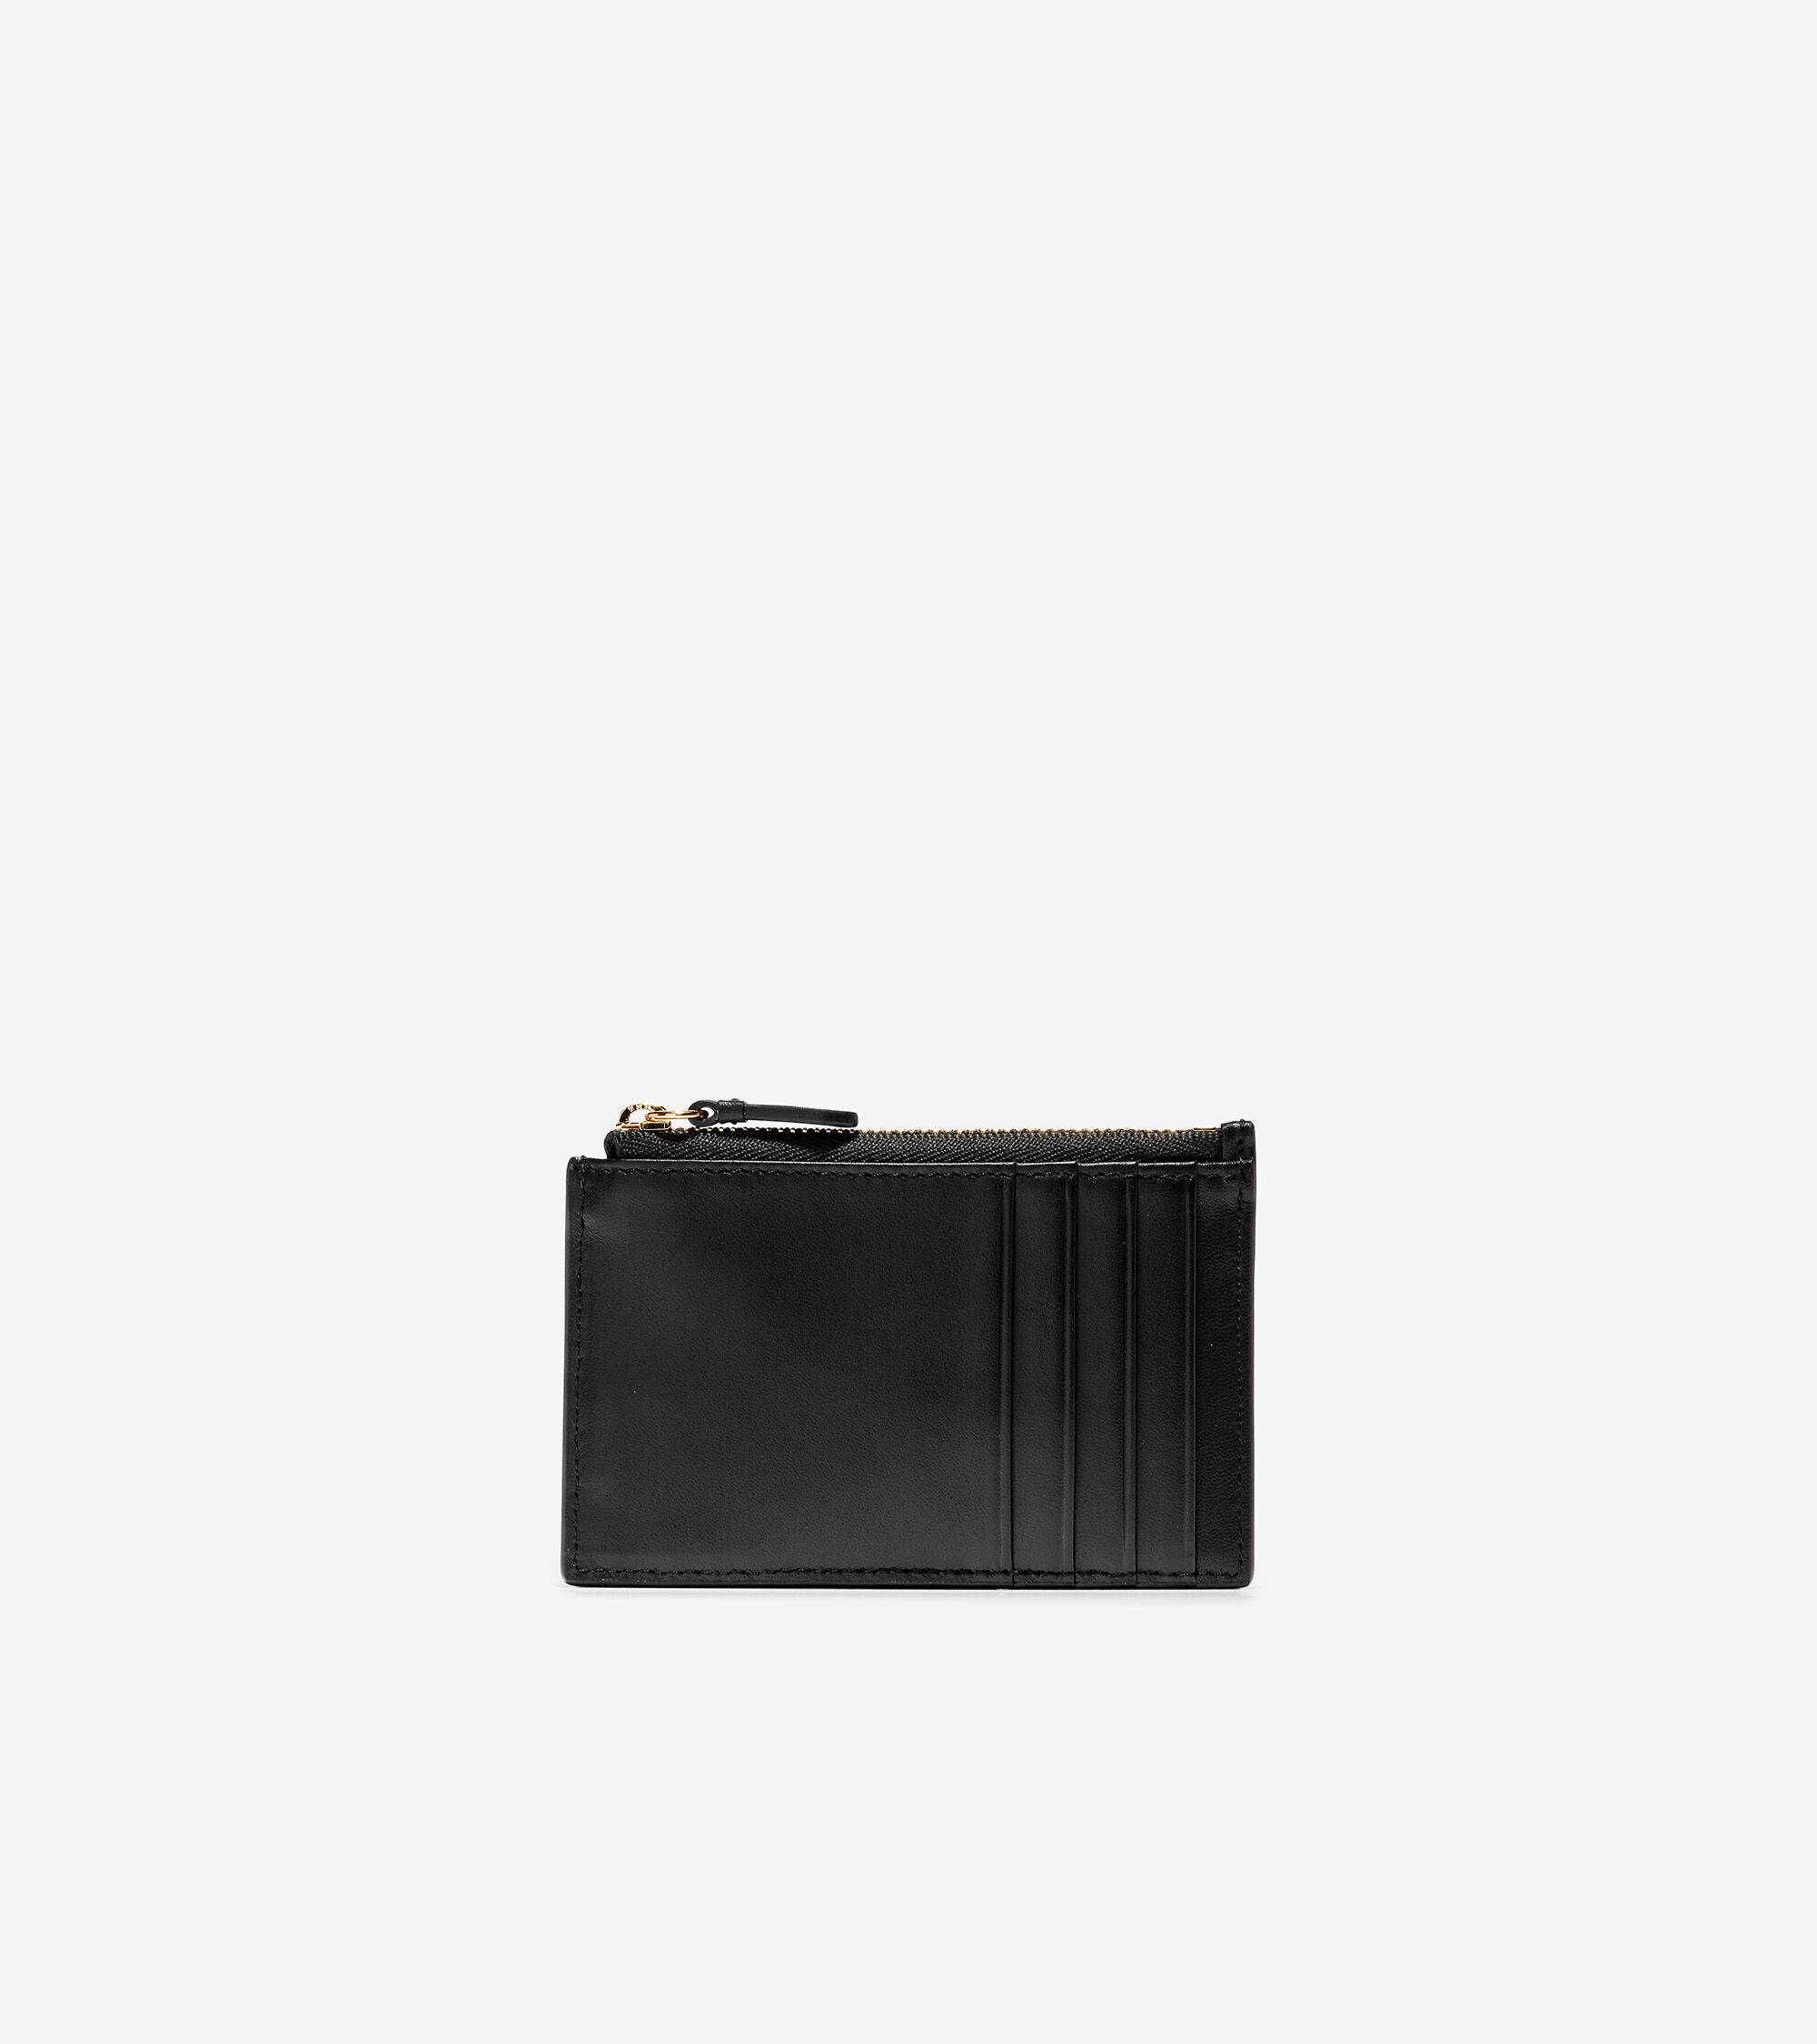 Cole Haan GRANDSERIES Card Case with Zip - BLACK - Size: OSFA